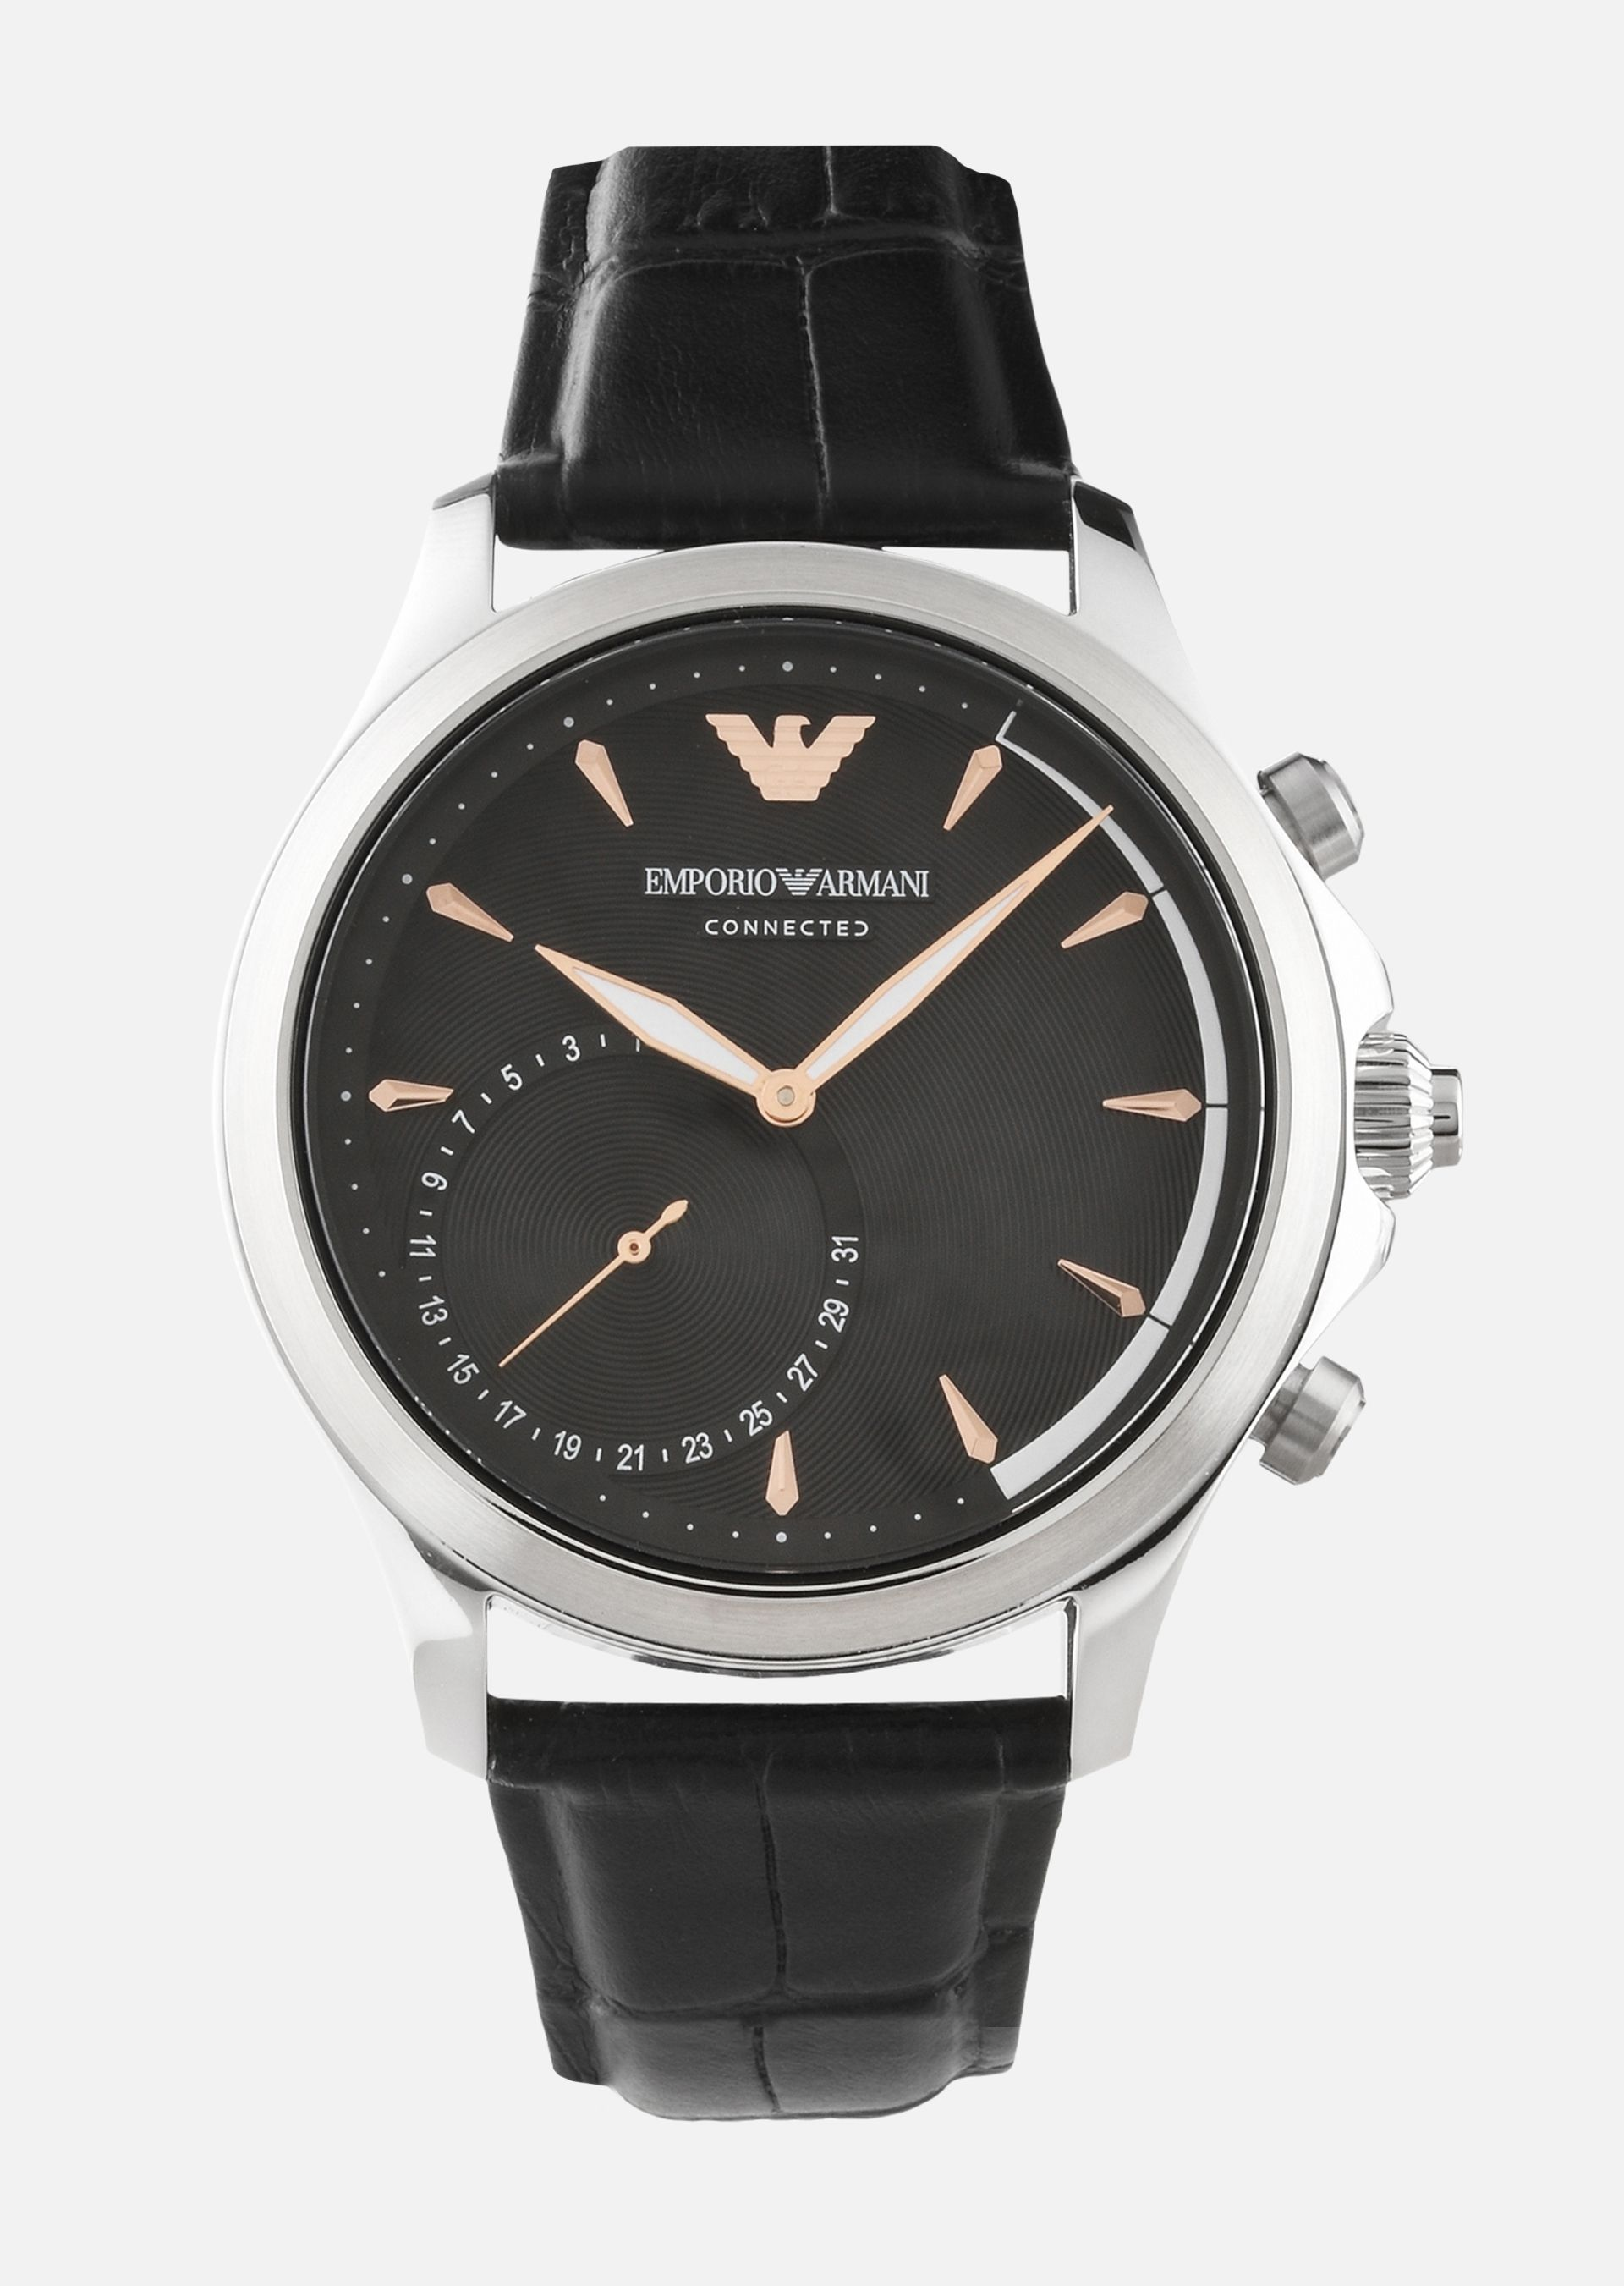 emporio armani connected hybrid smartwatch review